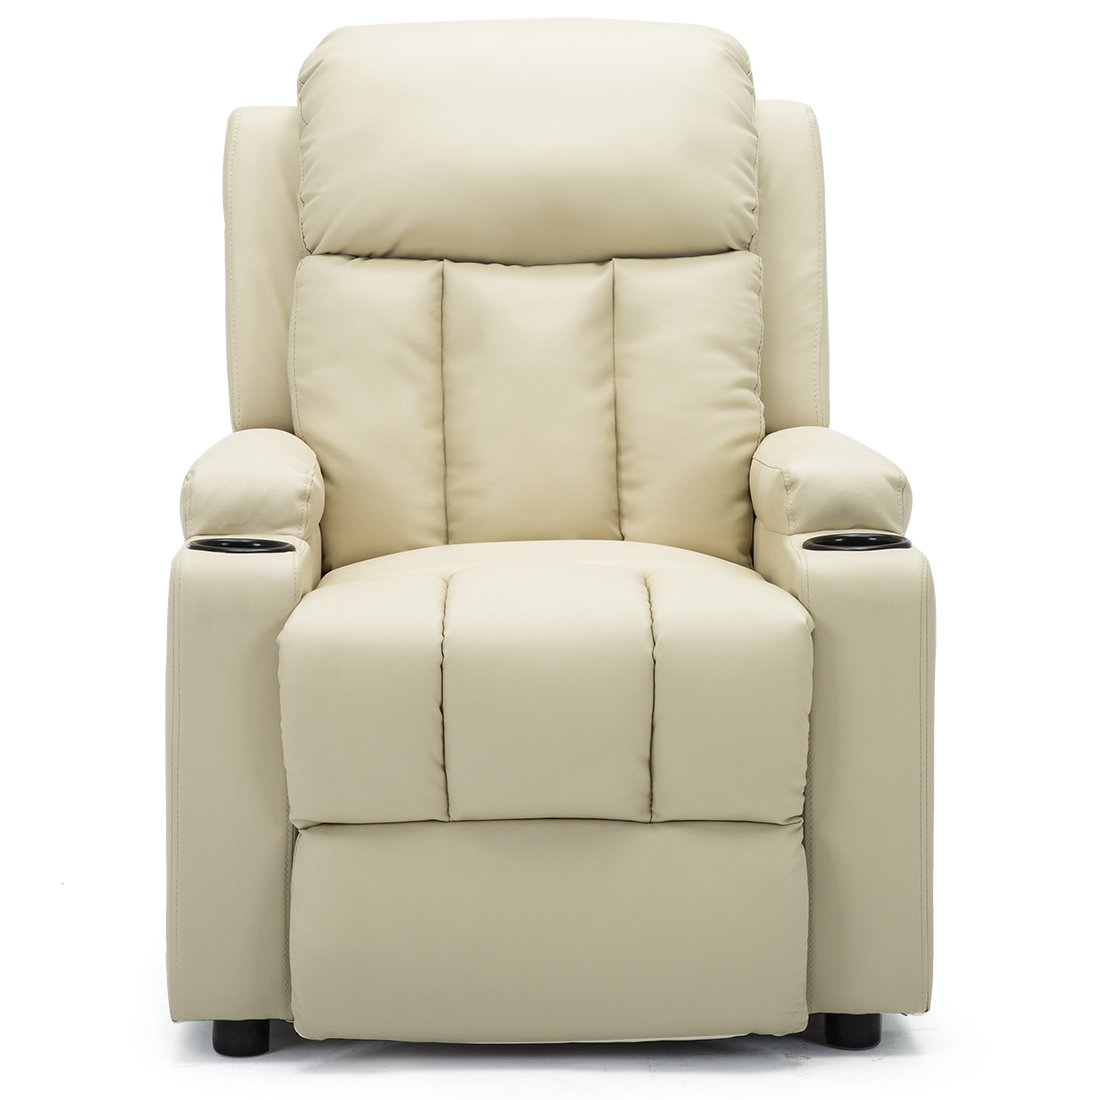 More4Homes STUDIO RECLINER w DRINK HOLDERS ARMCHAIR SOFA BONDED LEATHER CHAIR RECLINING CINEMA Black